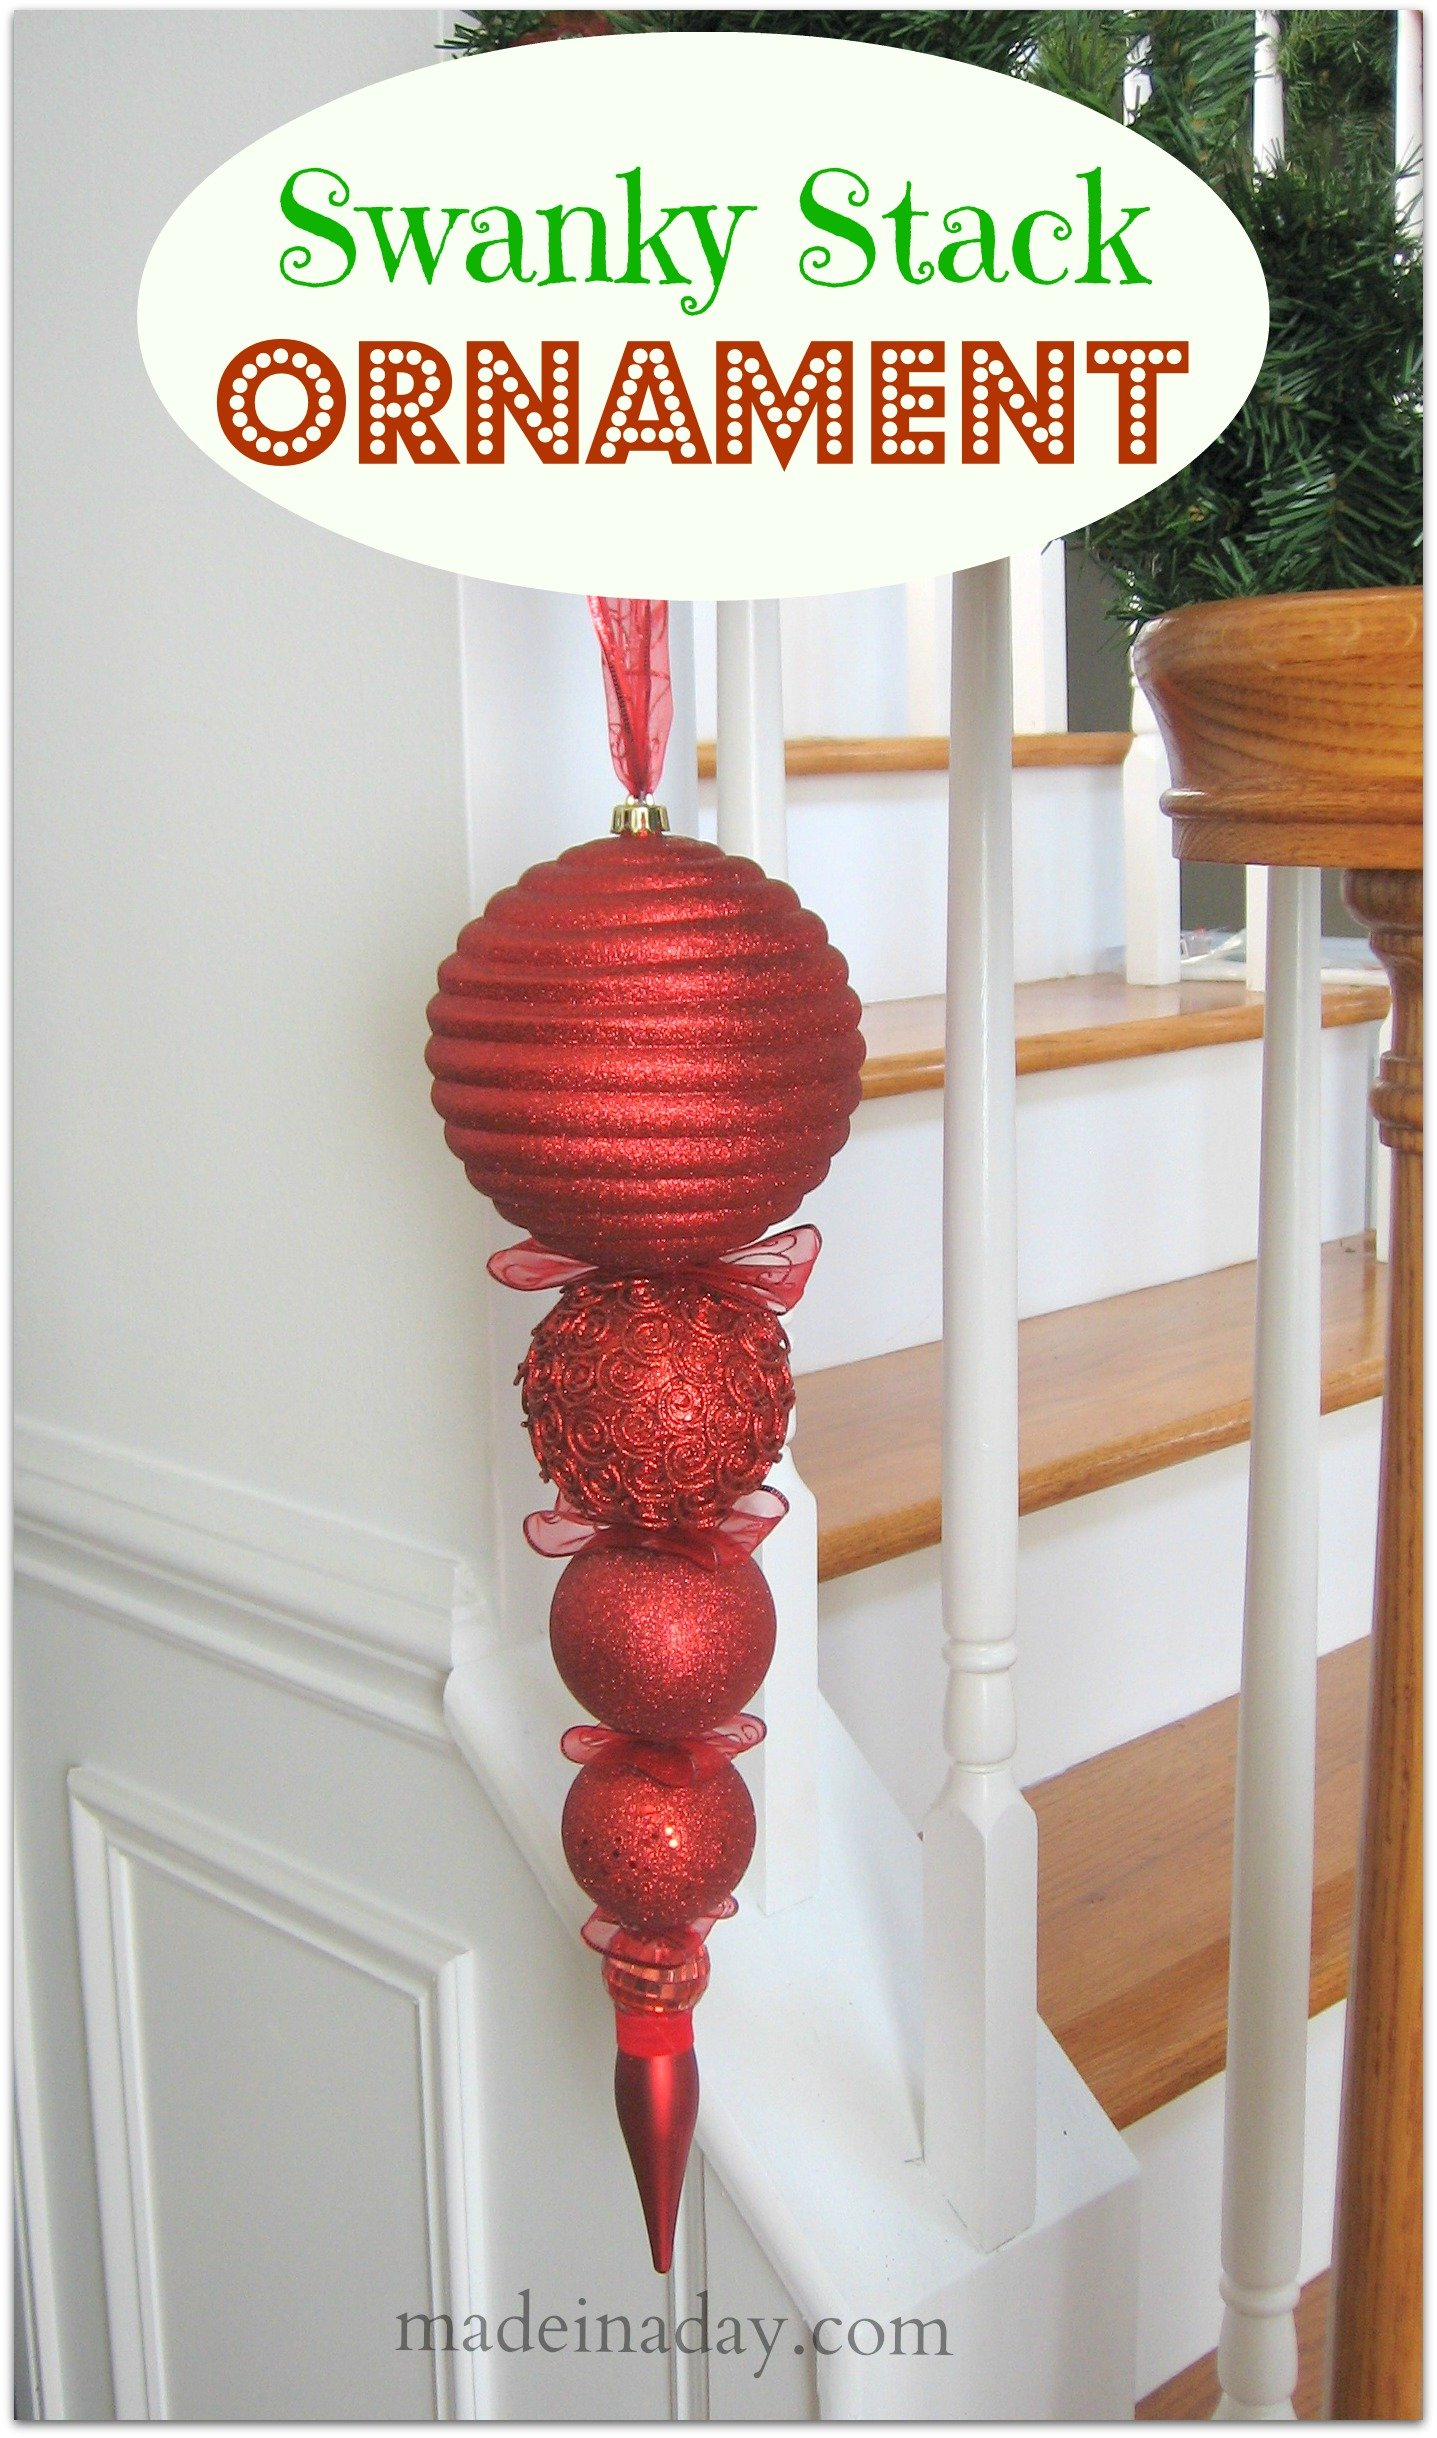 Swanky Stacked Ornament